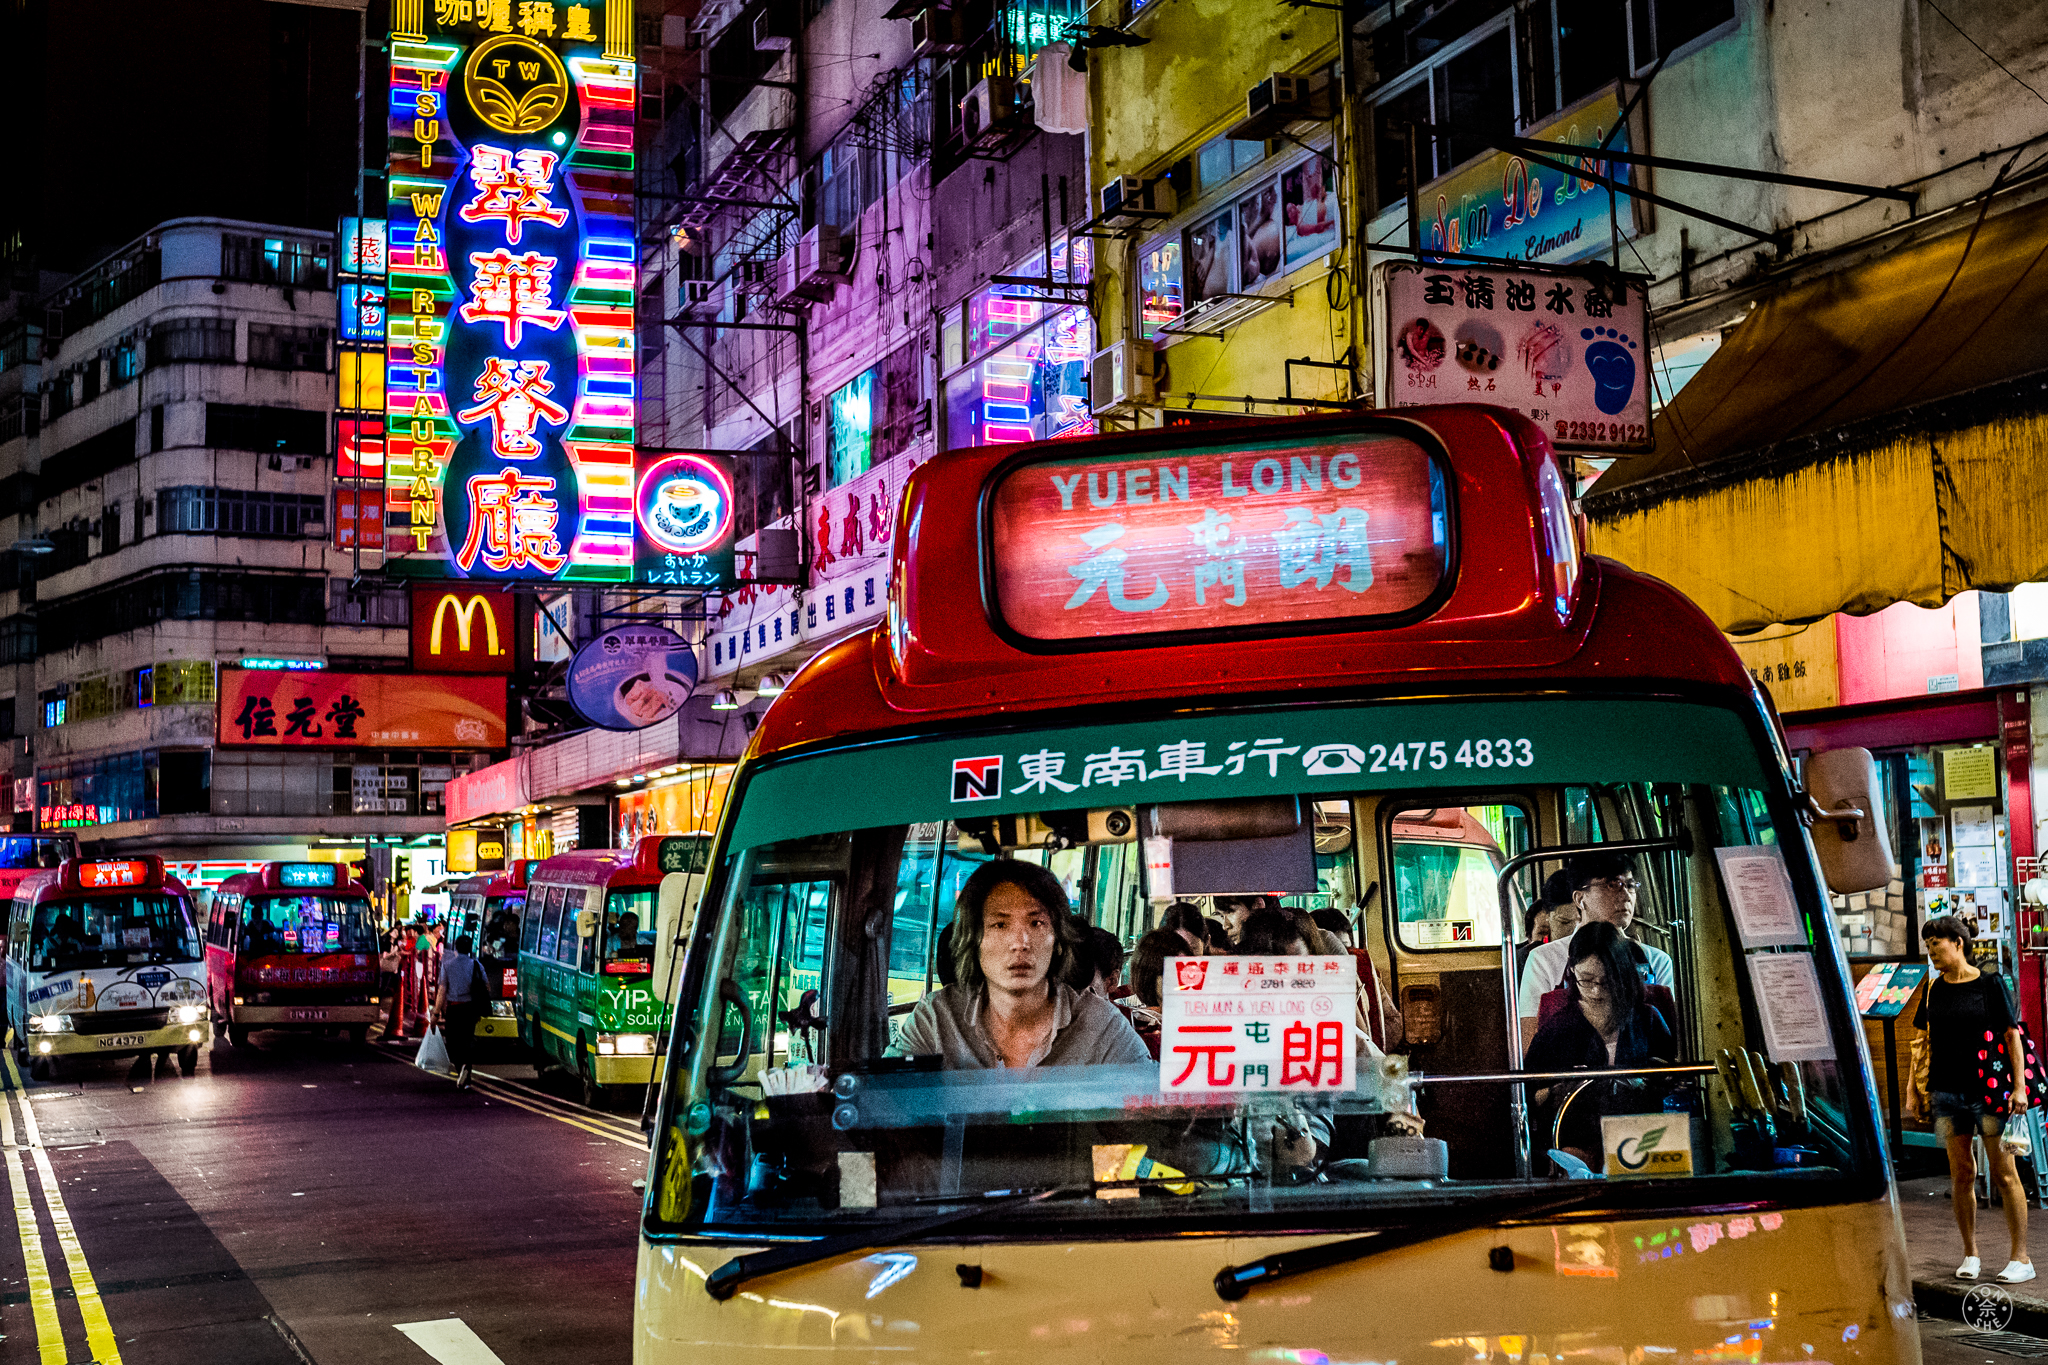 """""""Bus to Yuen Long"""".  I almost got run over by this bus, while standing in the middle of the street in Kowloon. All night these buses ferry Hongkongers to and from the city's urban centers, providing an air-conditioned respite from the mid-year humidity. Kowloon, Hong Kong, China. June 2016. Leica SL (Typ 601), Leica Summilux-M 35mm Aspherical. © Jon She."""